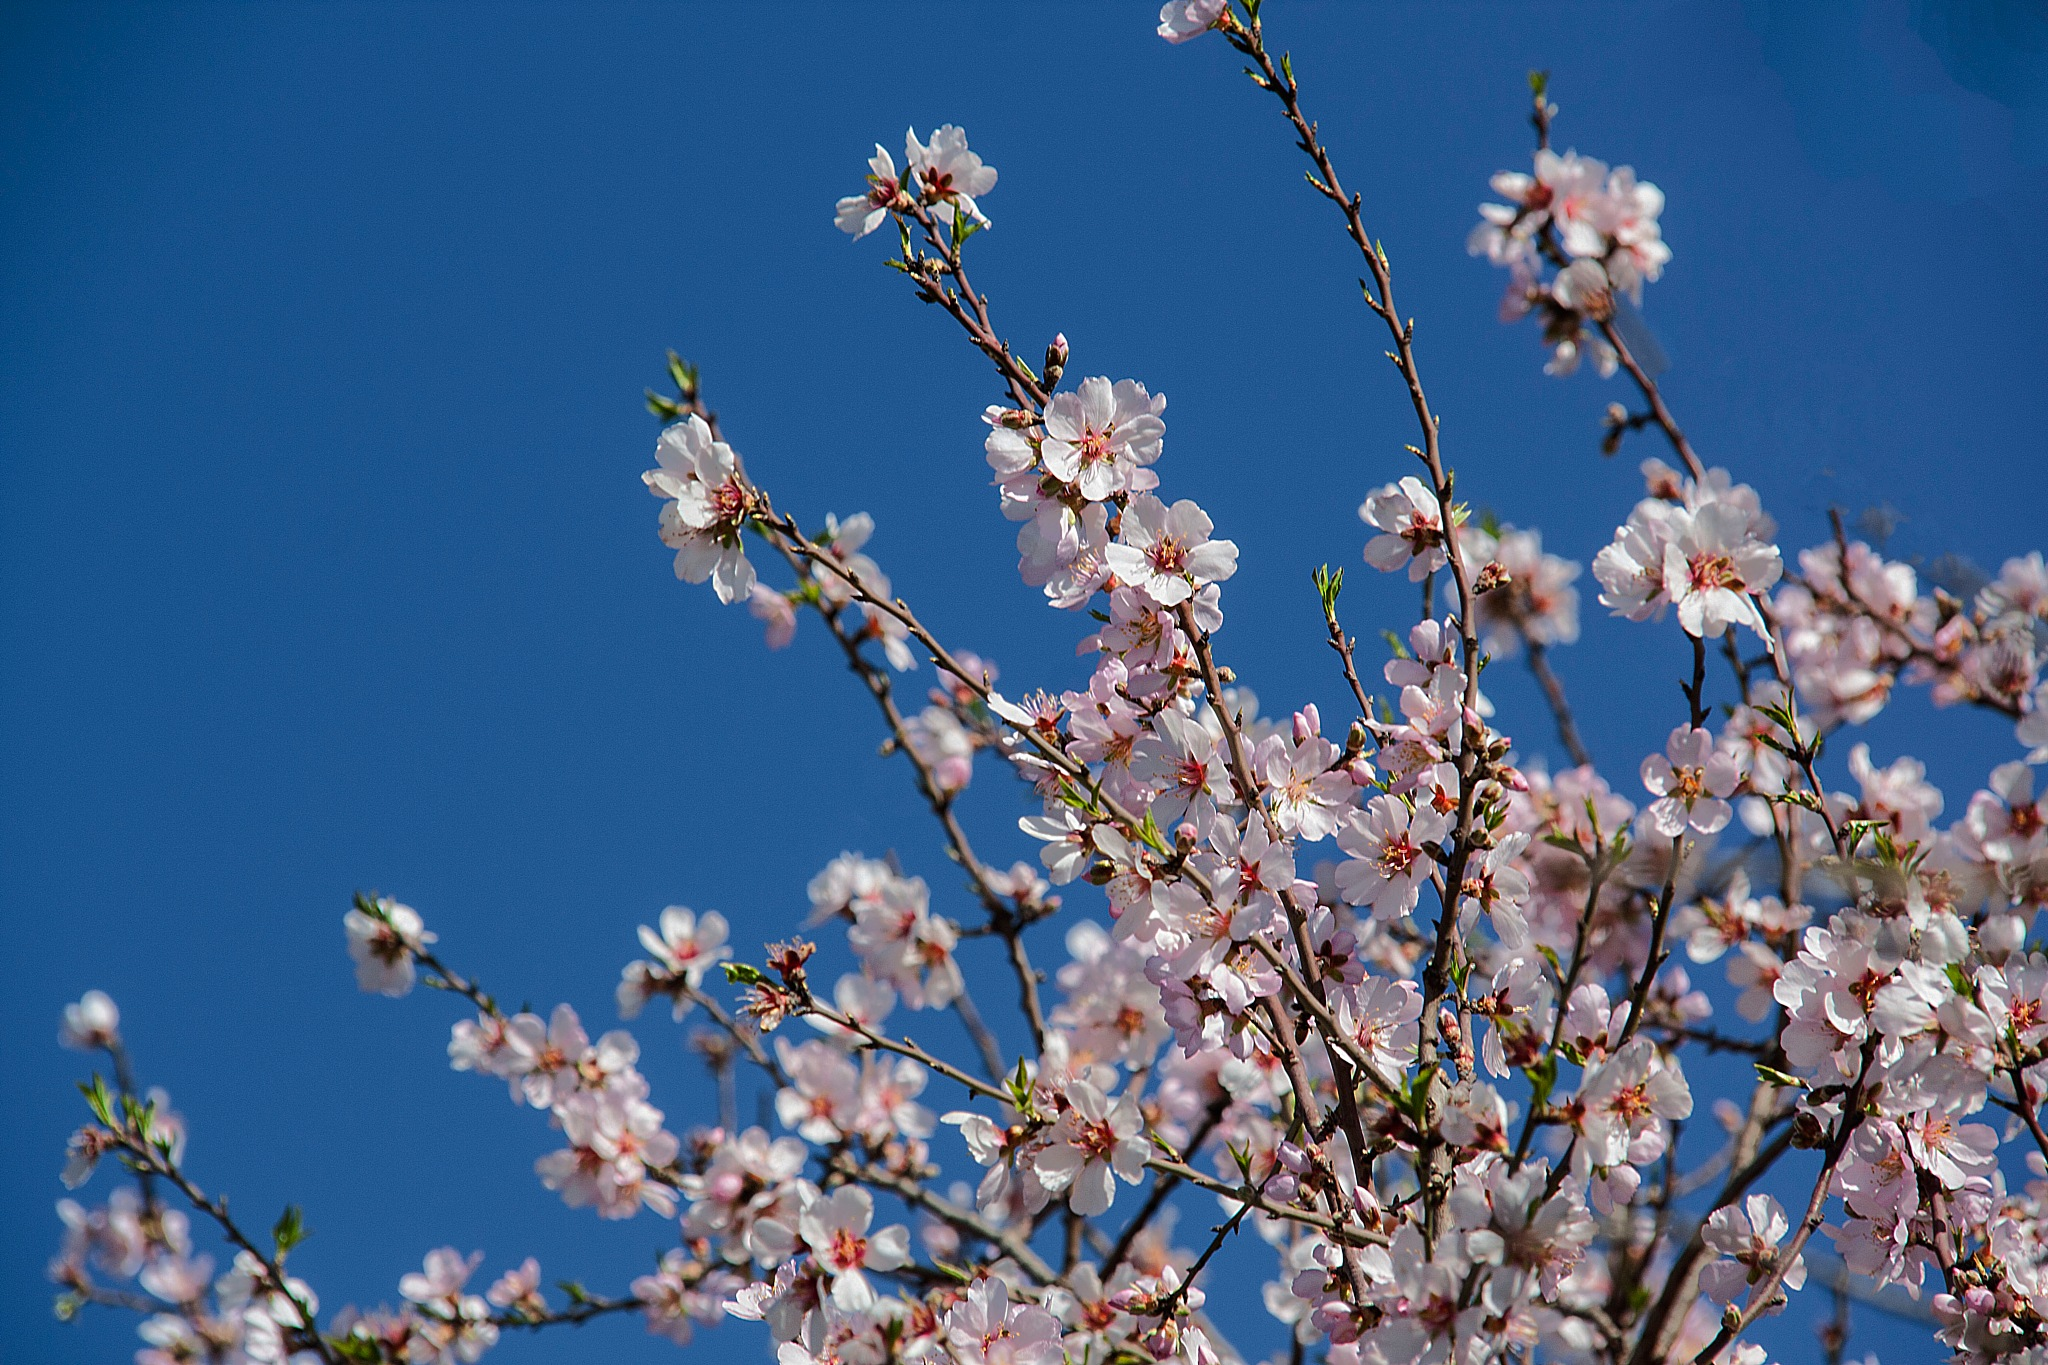 The Almond tree is blooming... by Rebecca Danieli